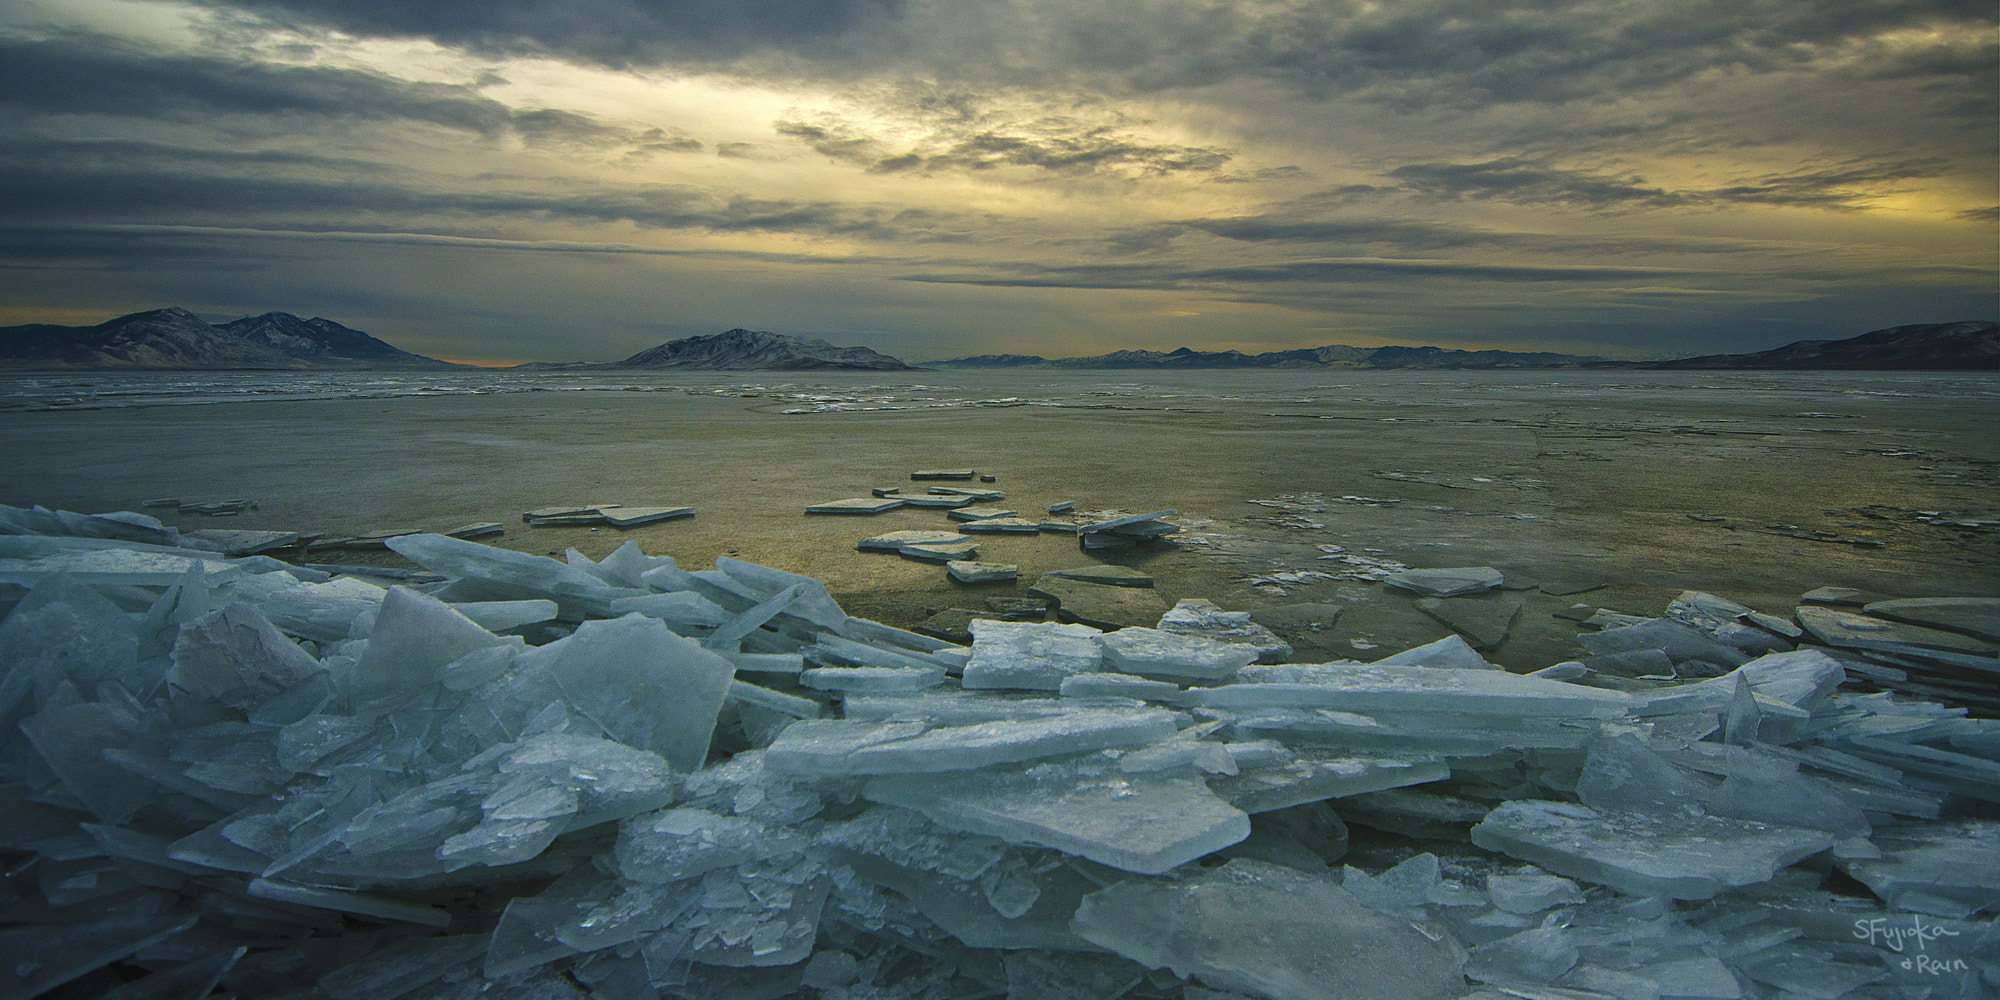 Photograph Ice Slabs at Utah Lake by Shinji Fujioka on 500px